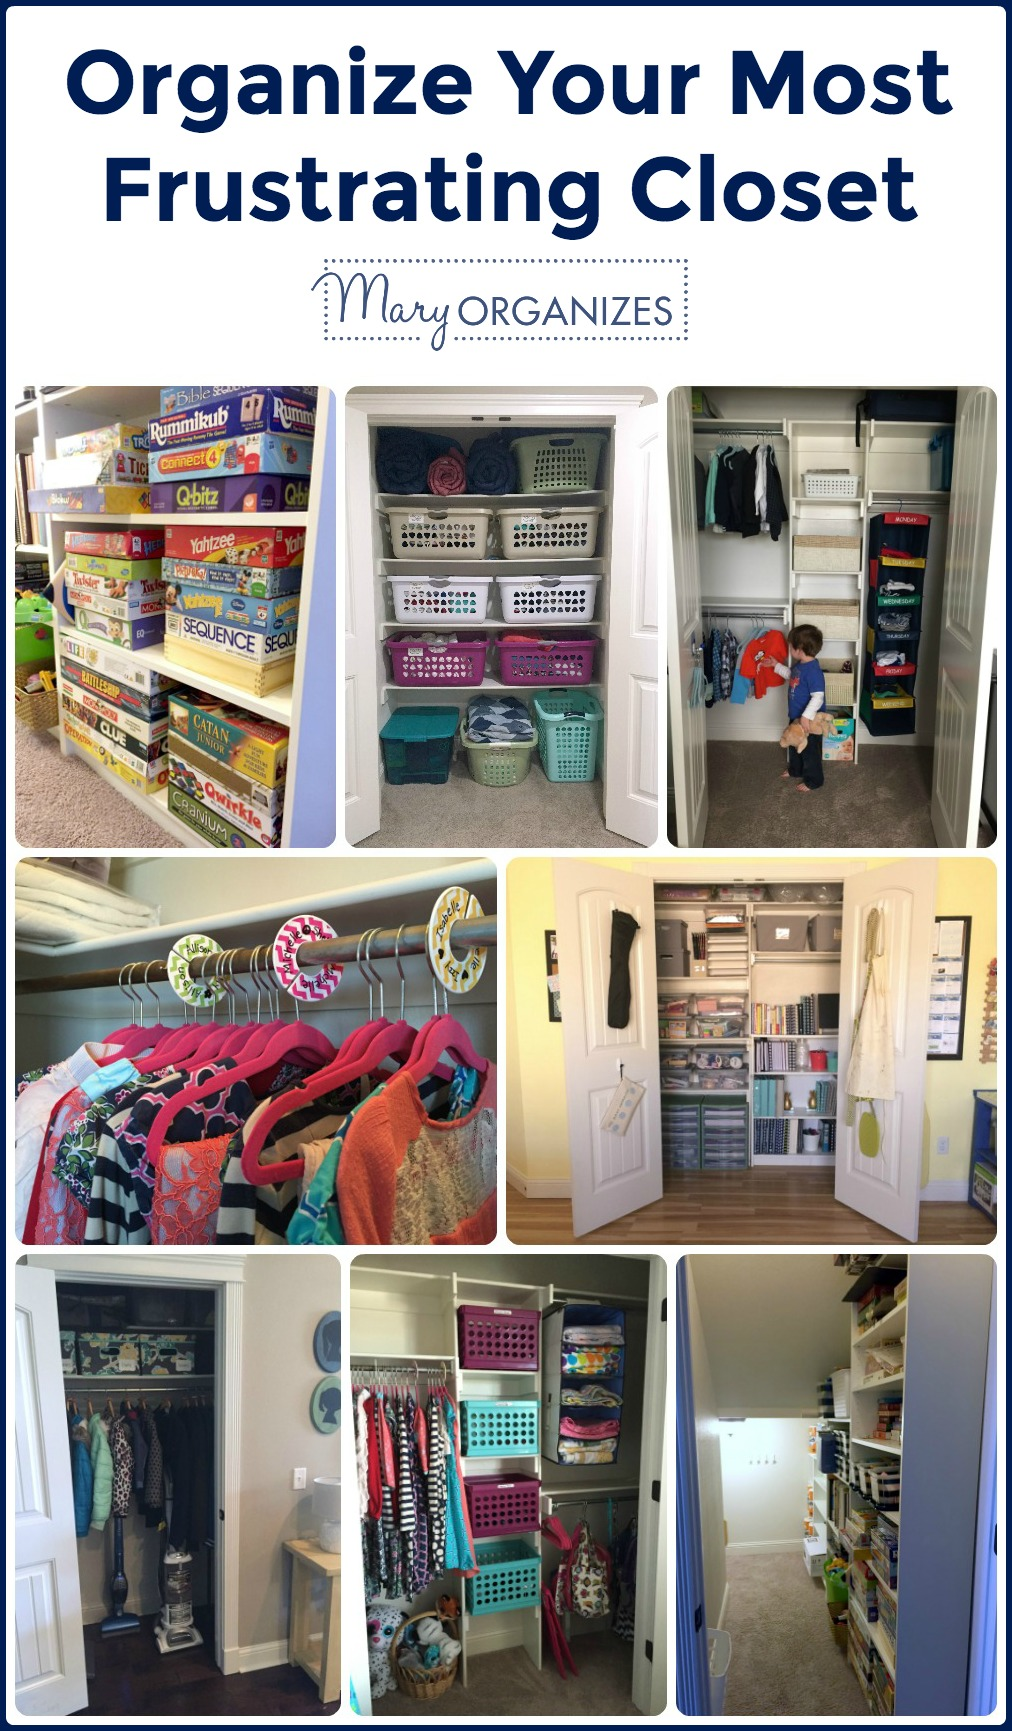 Time To Open Your Monica Closet - Lets Organize Your Most Frustrating Closet -v